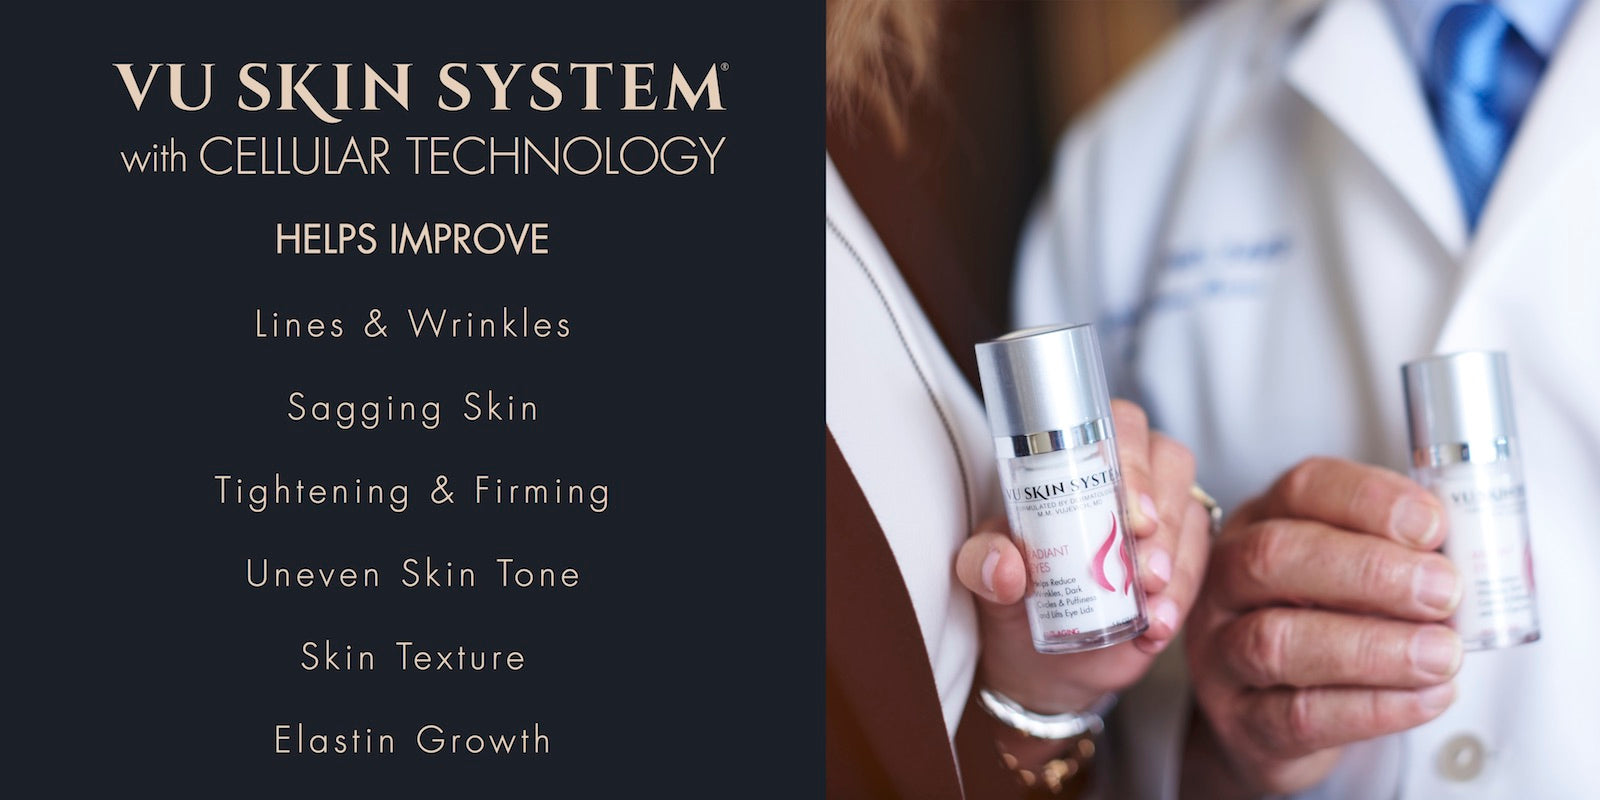 vu skin system with cellular technology helps improve lines and wrinkles, sagging skin, tightening and firming, uneven skin tone, skin texture, elastin growth